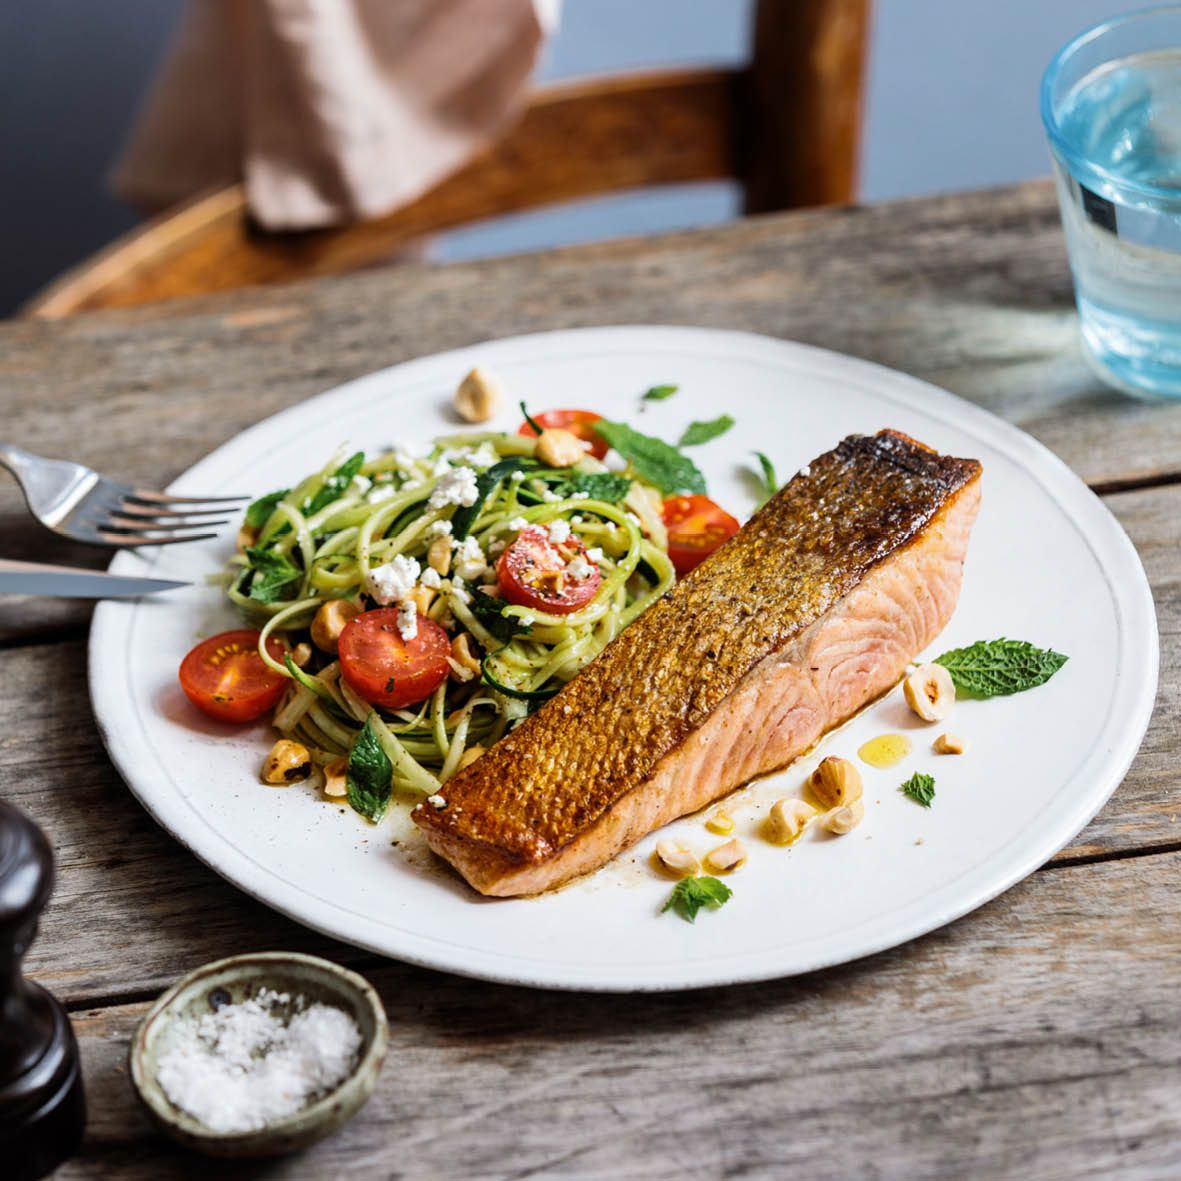 Huon Salmon with Zucchini noodles - Hill Street (002).jpg